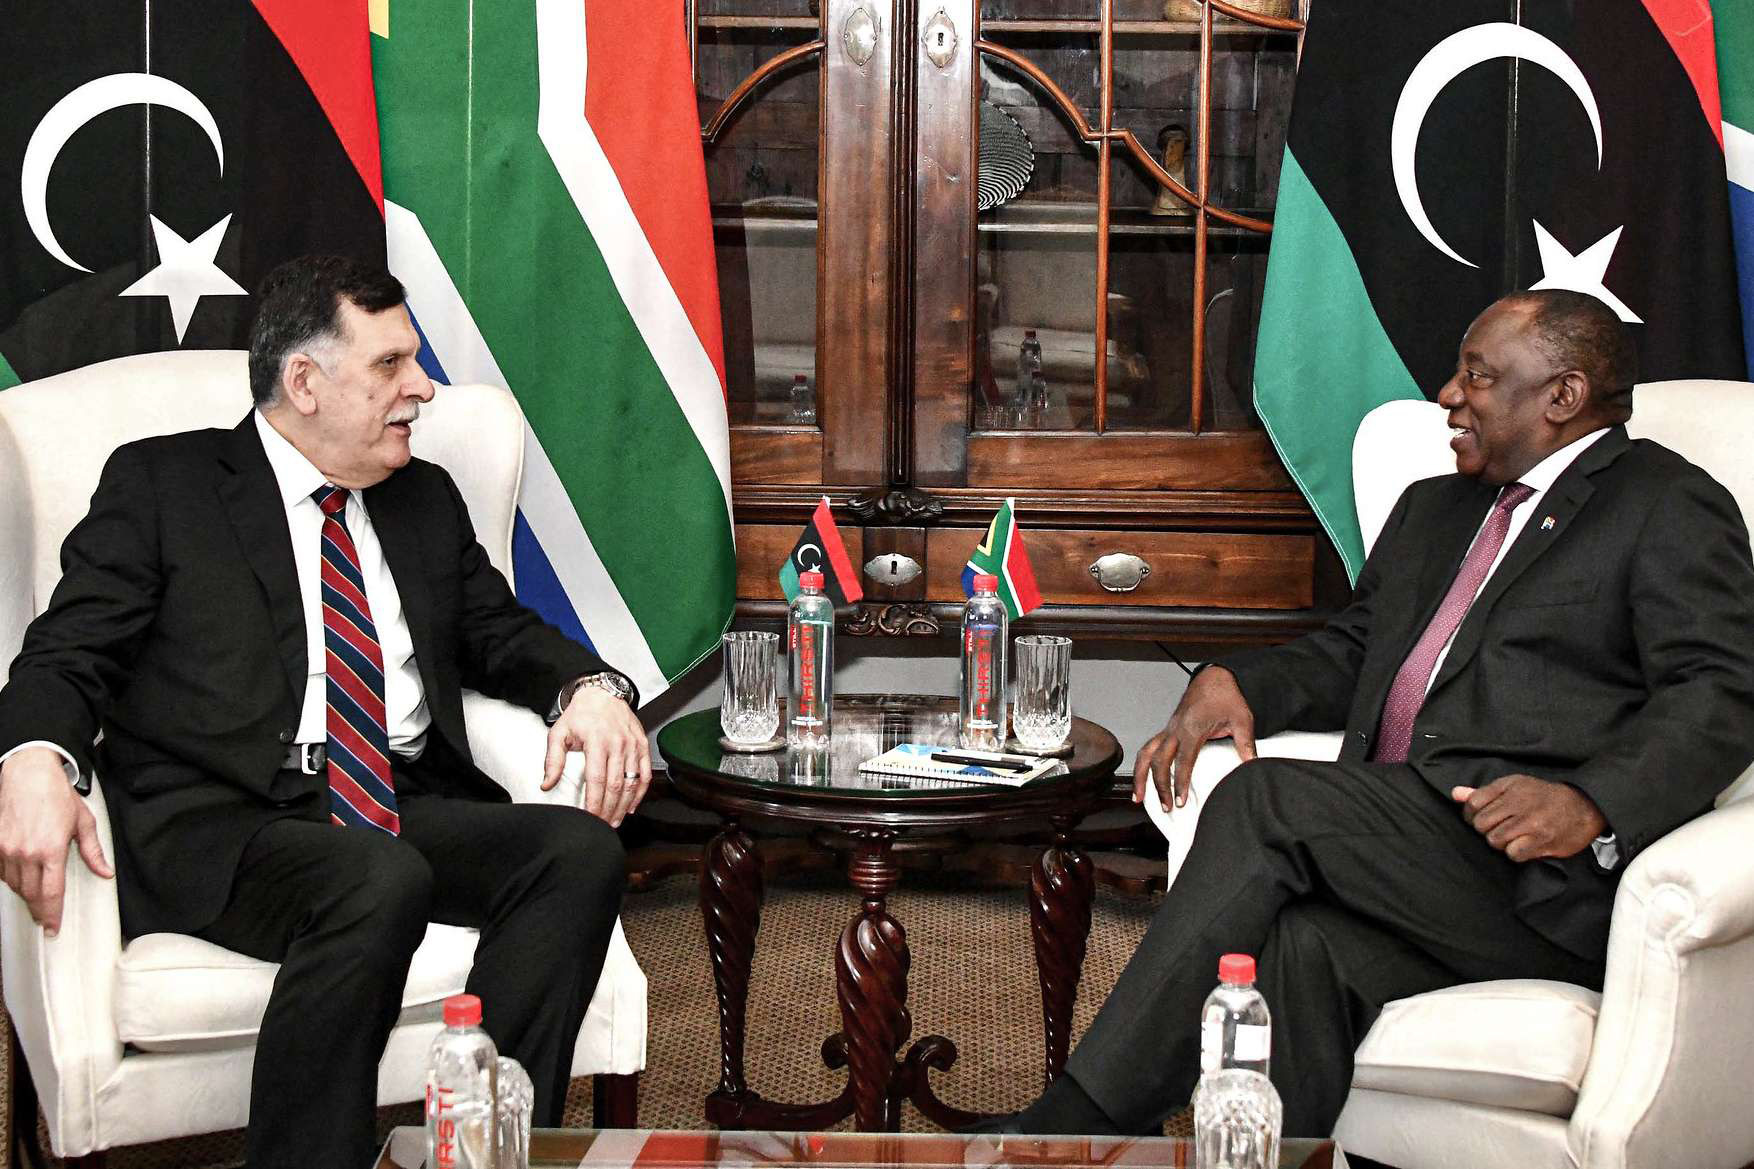 South African President Cyril Ramaphosa (R) speaks with Fayez Sarraj, head of the UN-recognised Government of National Accord (GNA), March 10. (DPA)